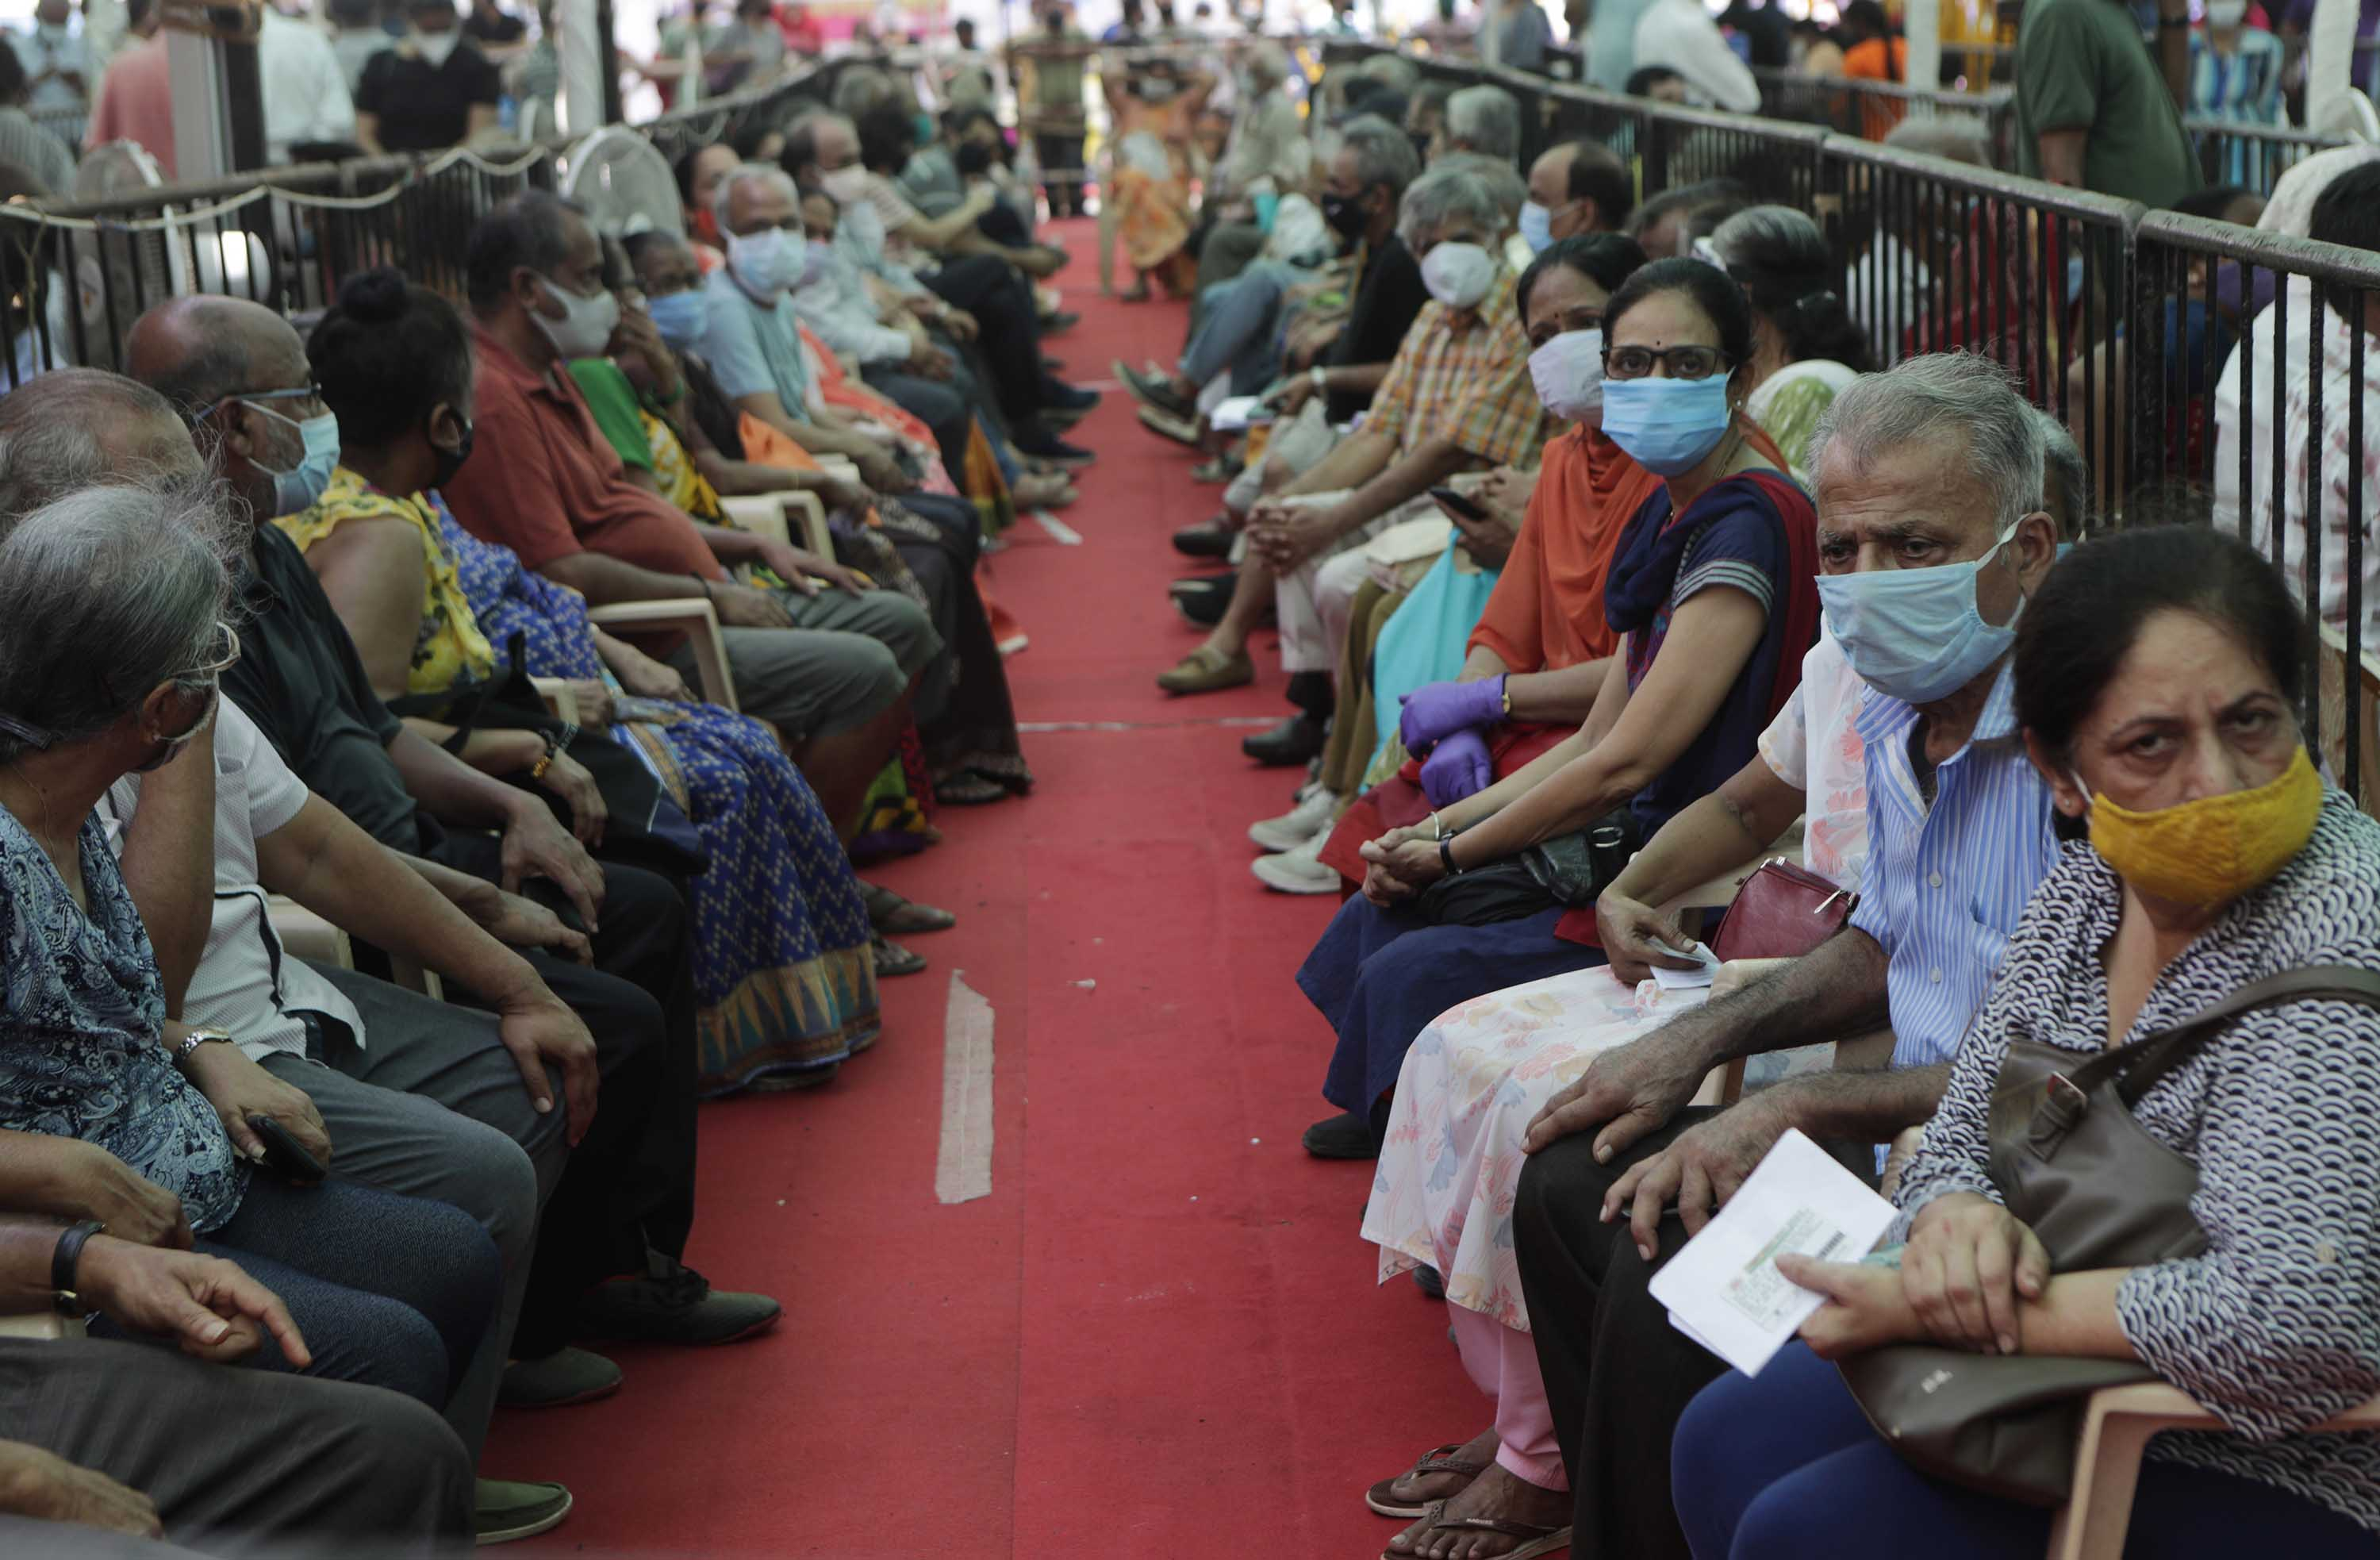 People wait to receive a Covid-19 vaccine in Mumbai, India, on Thursday, April 29.